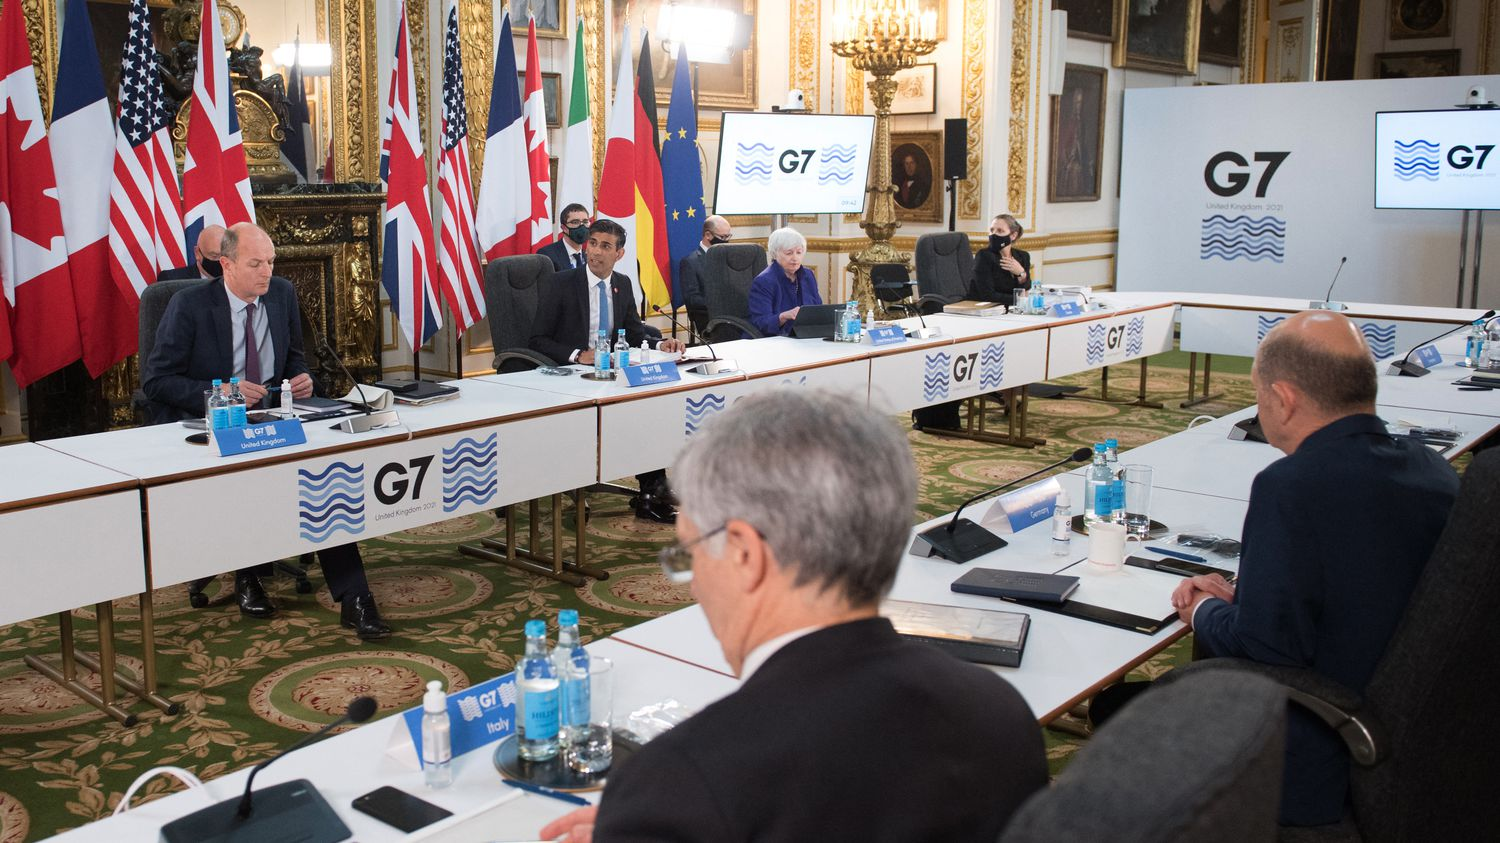 G7 promises a historic deal at the minimum corporate tax rate